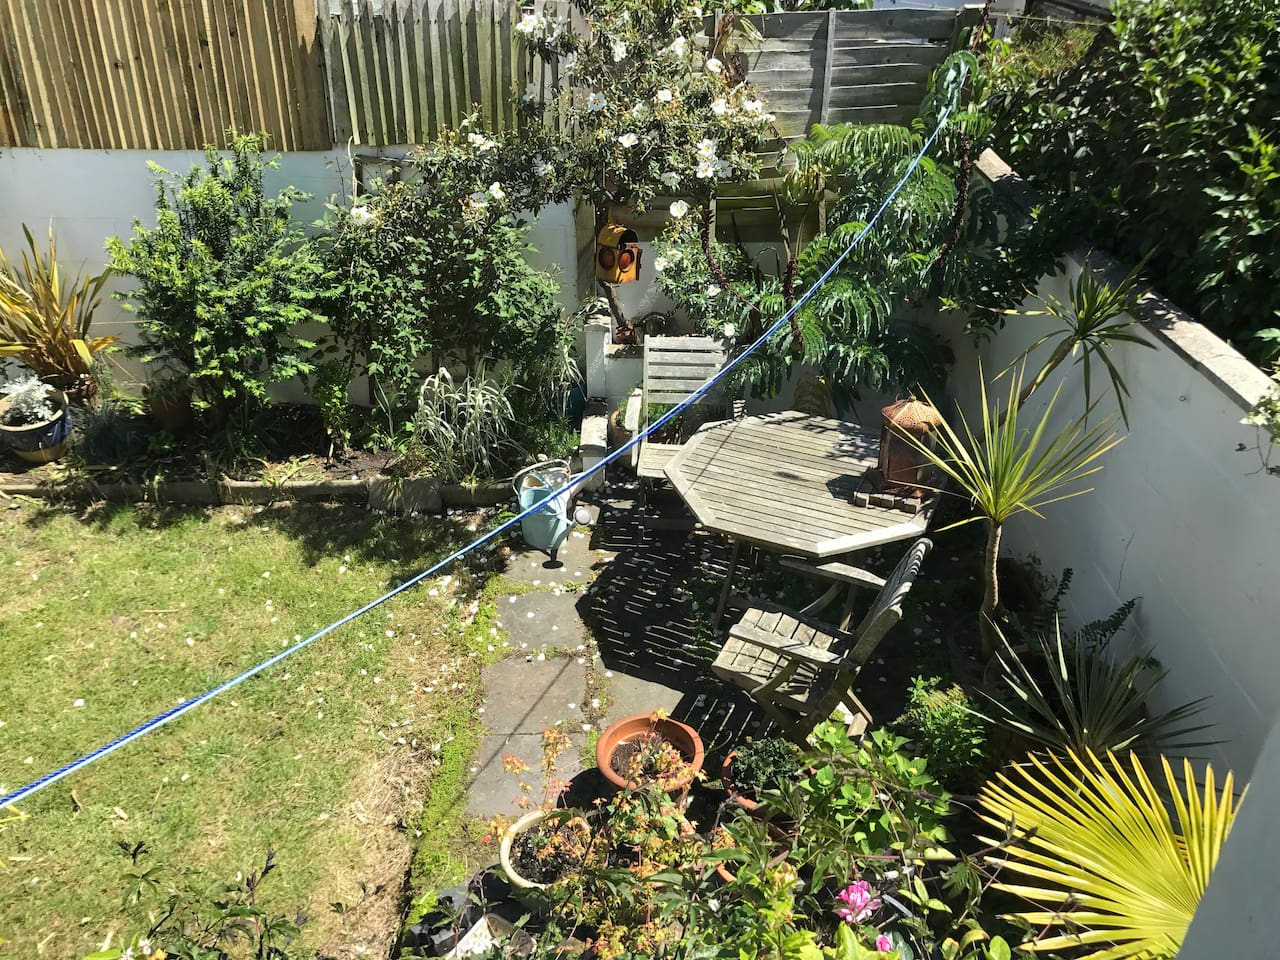 Back garden gets the morning sun - time for coffee and a relax